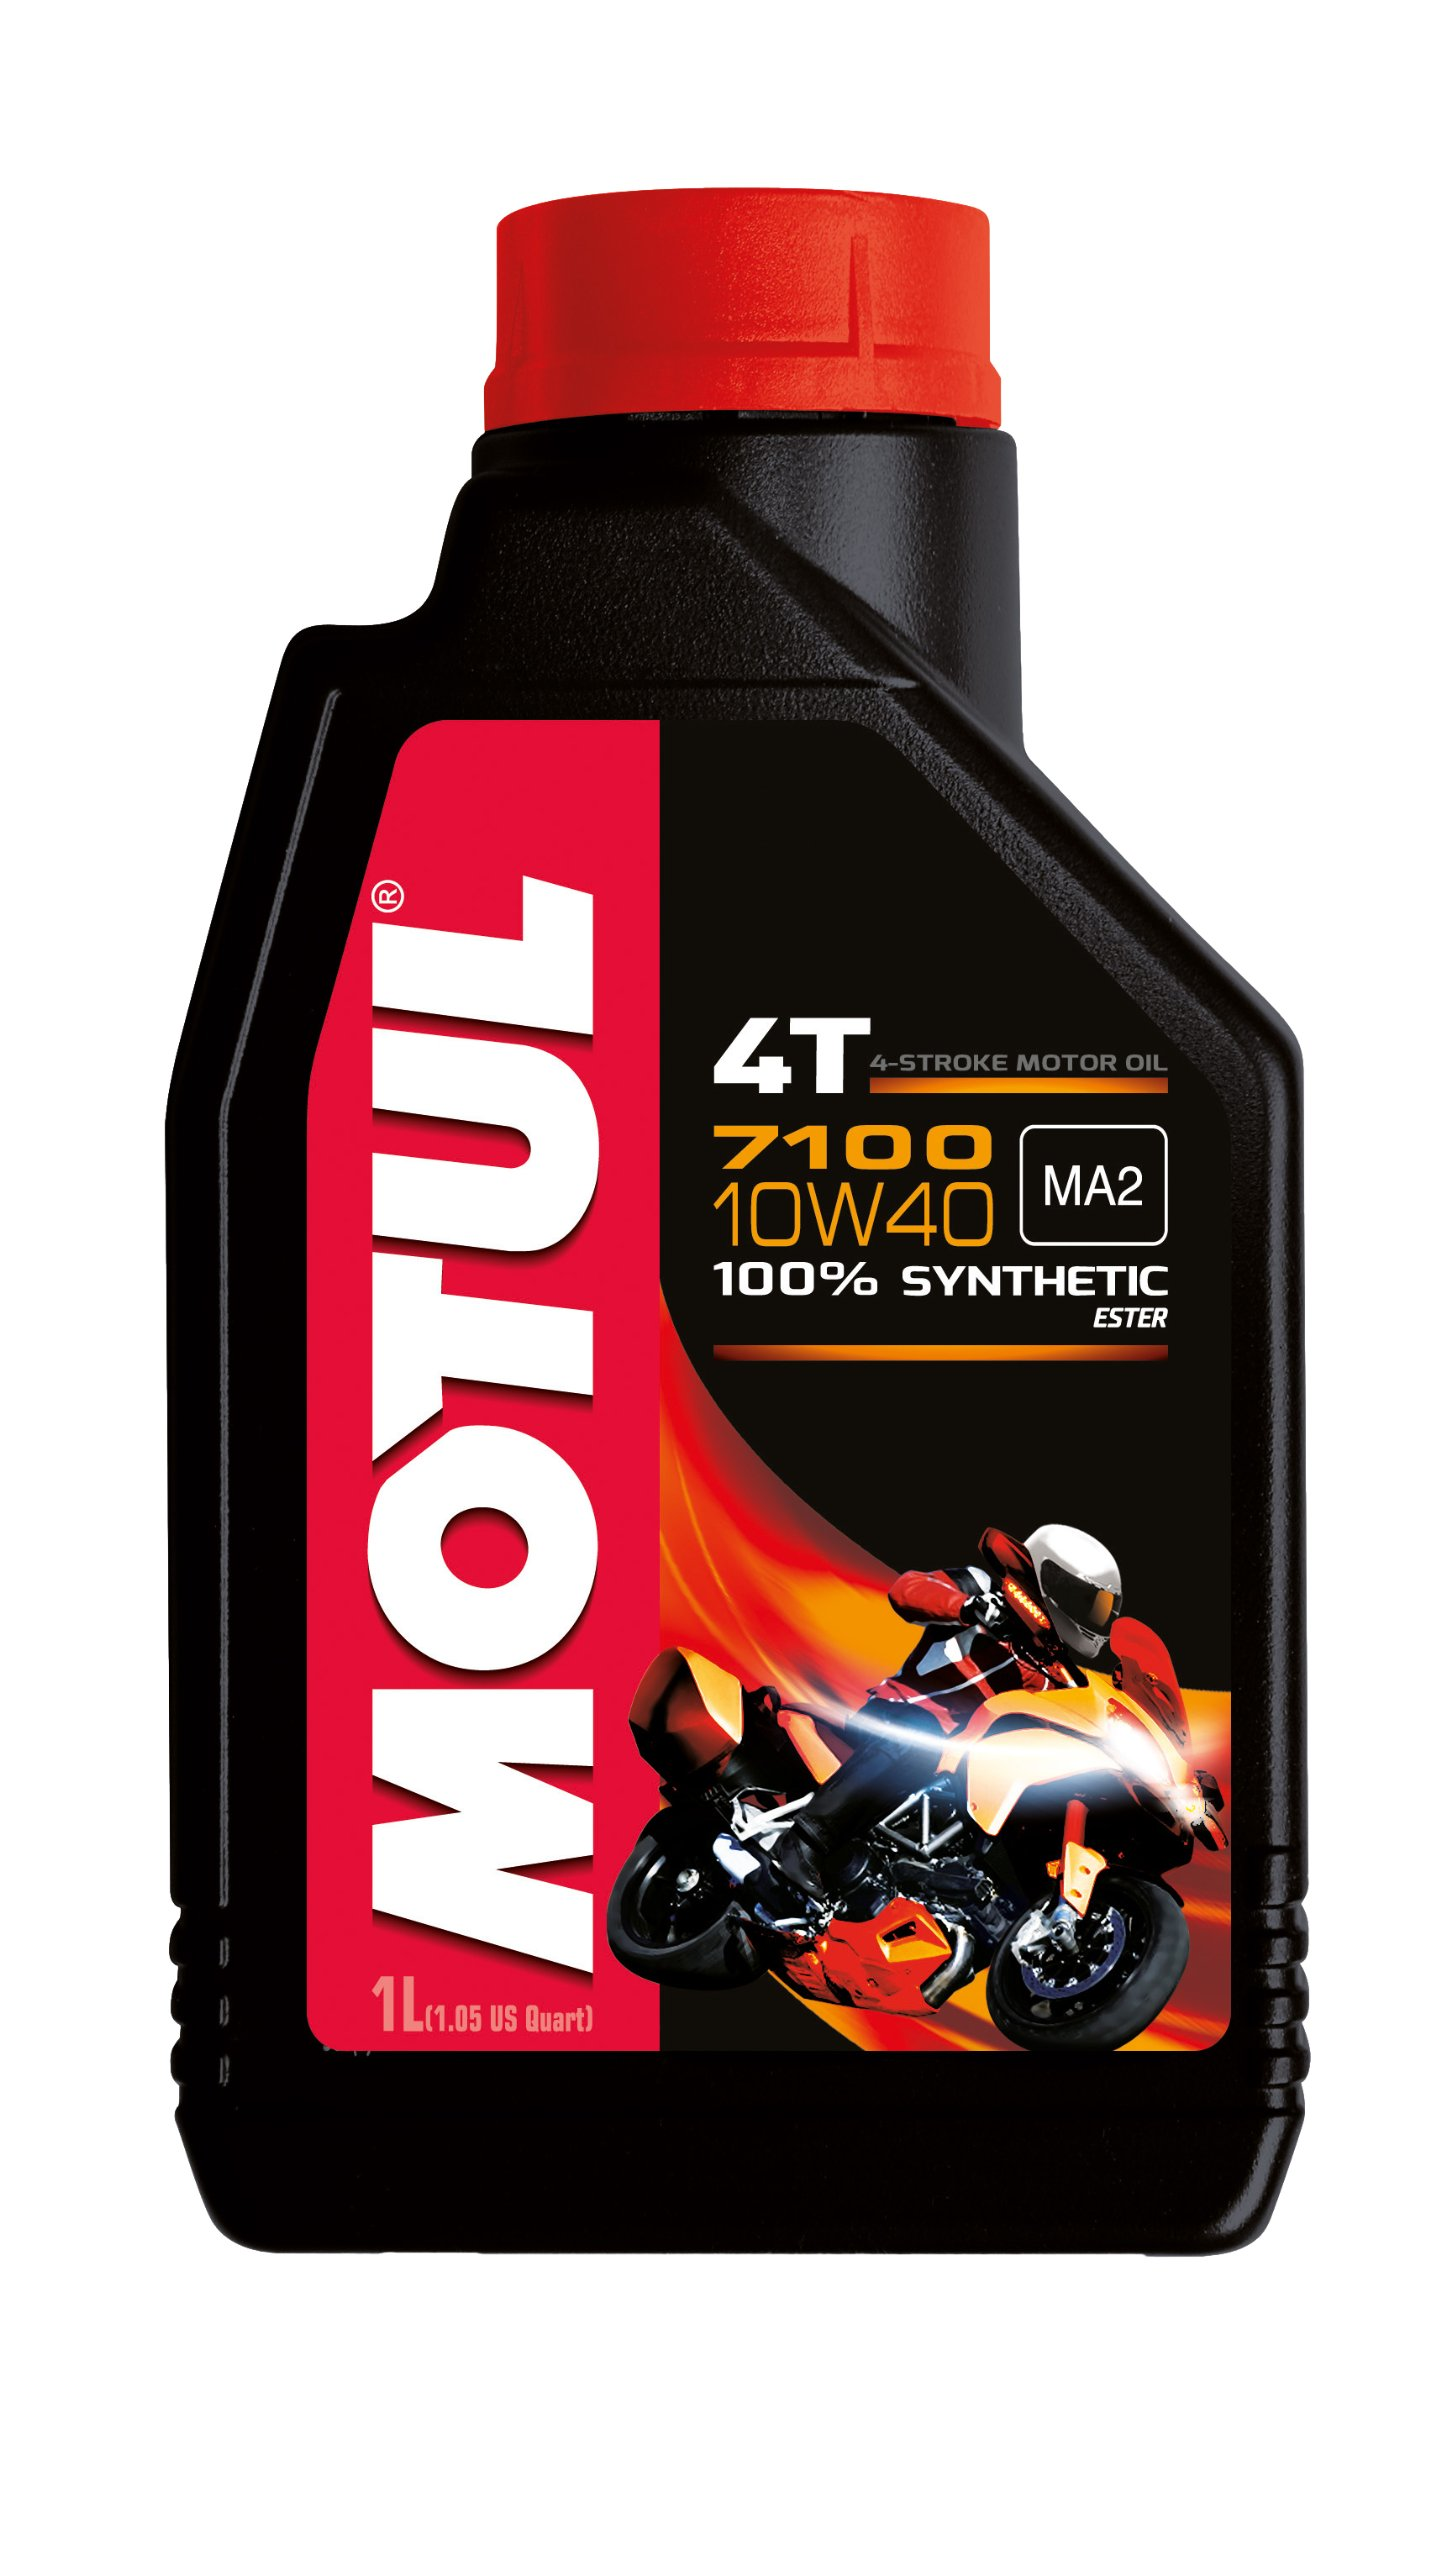 Motul 104091 7100 Ester 4T Fully Synthetic 10W-40 Petrol Engine Oil for Bikes (1 L) product image